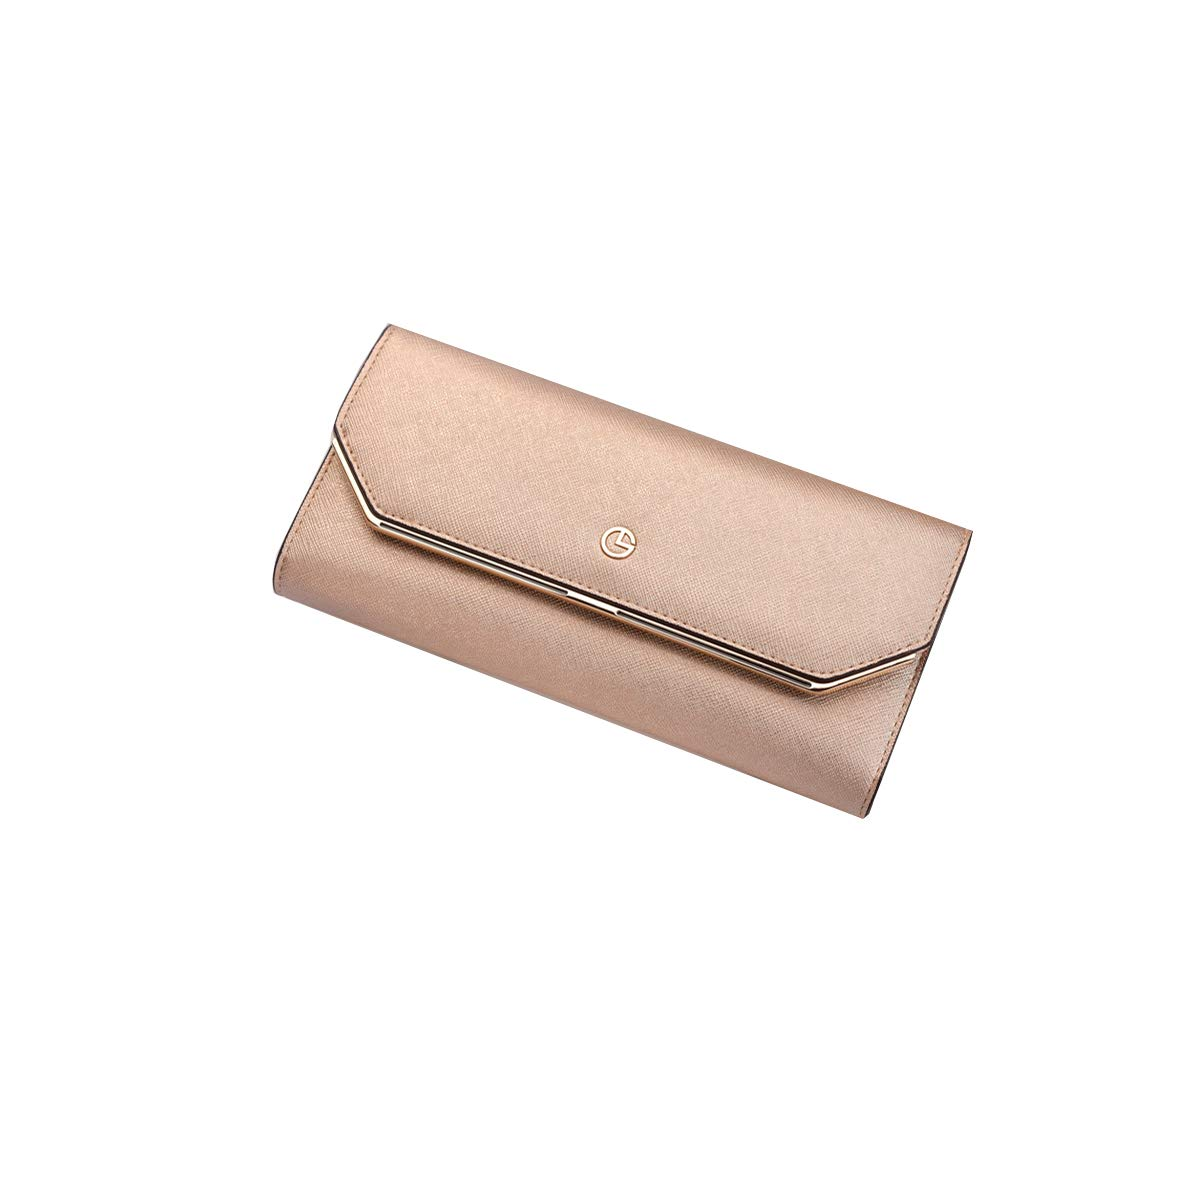 gold Muziwenju Leather Wallet, Clutch, Big Travel Wallet Handbag, Ladies Box Gift Latest Style, Practical